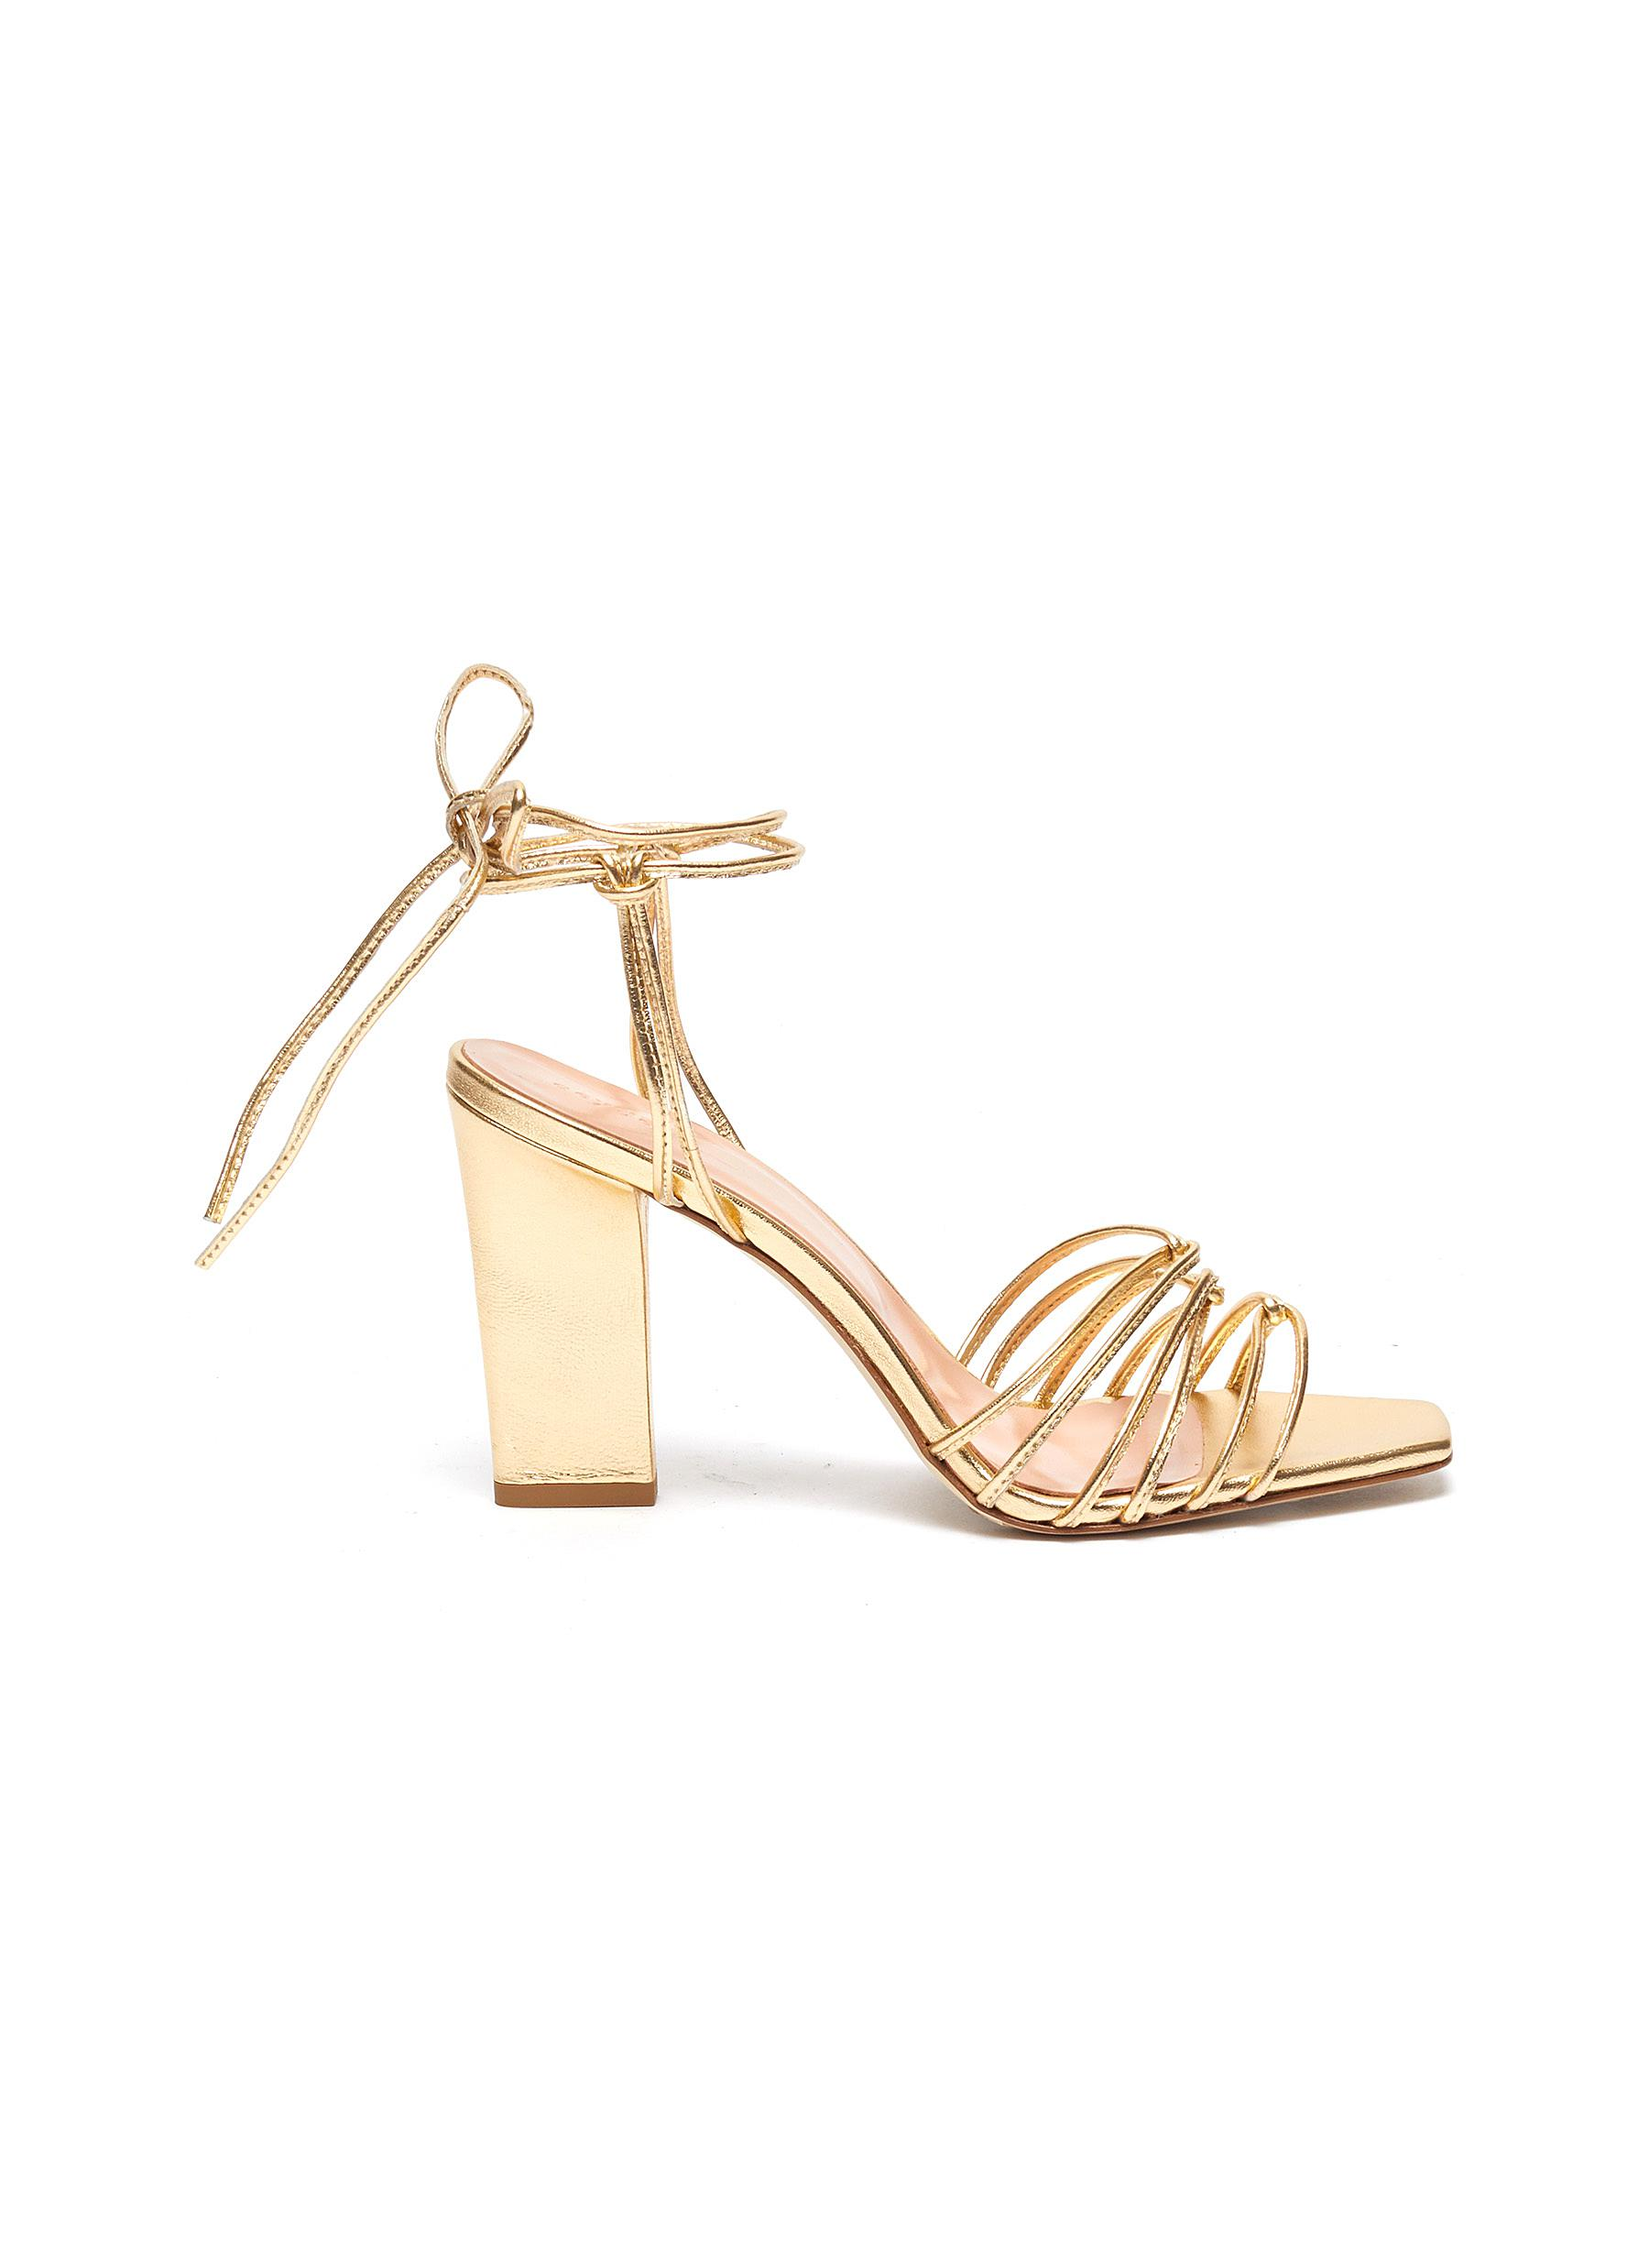 Daisy strappy metallic leather sandals by Aeyde